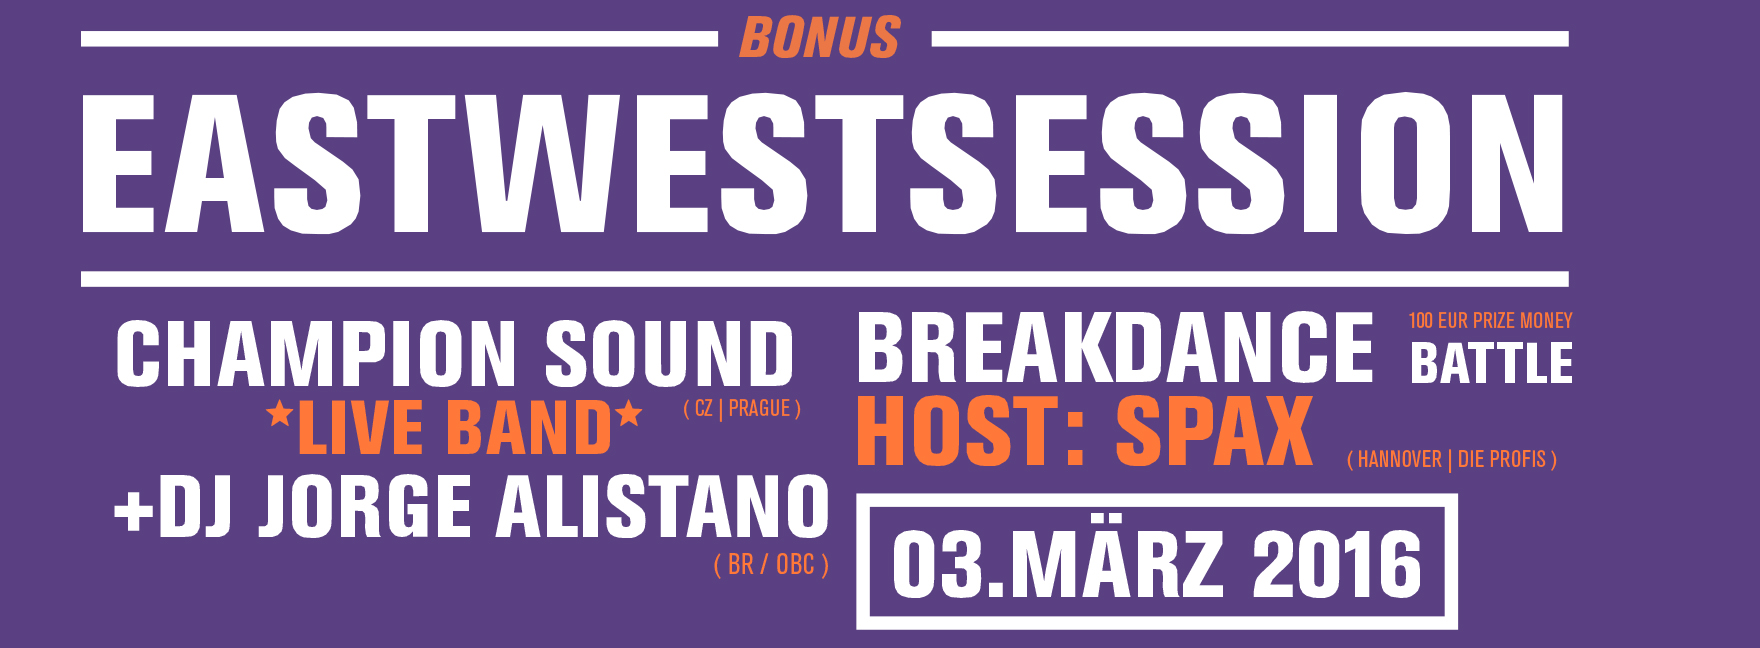 East-West Session #Funk'n Breaks Special w/ Champion Sound, Breakdance Battle hosted by Spax